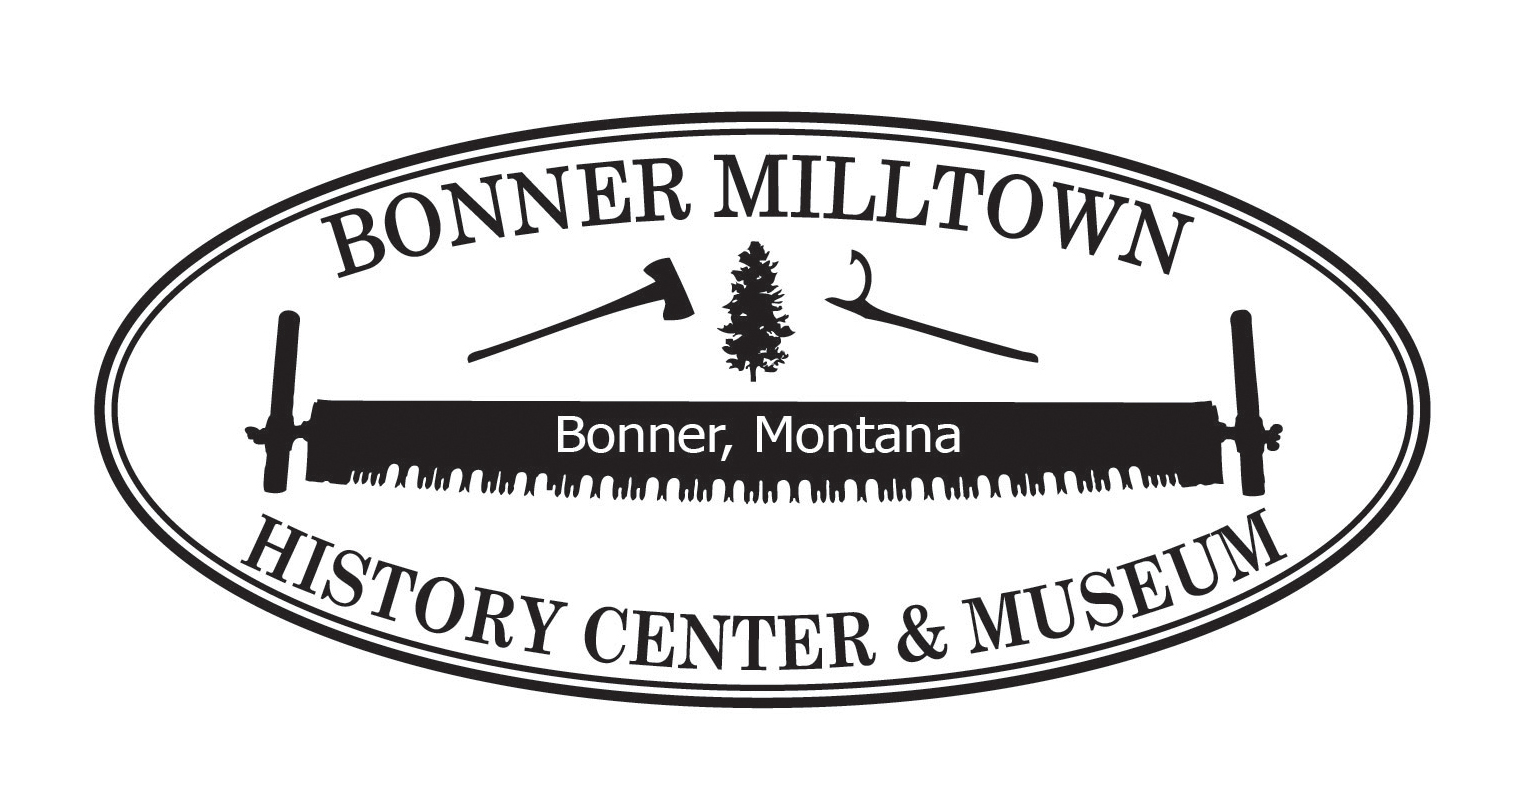 Bonner Milltown History Center and Museum logo